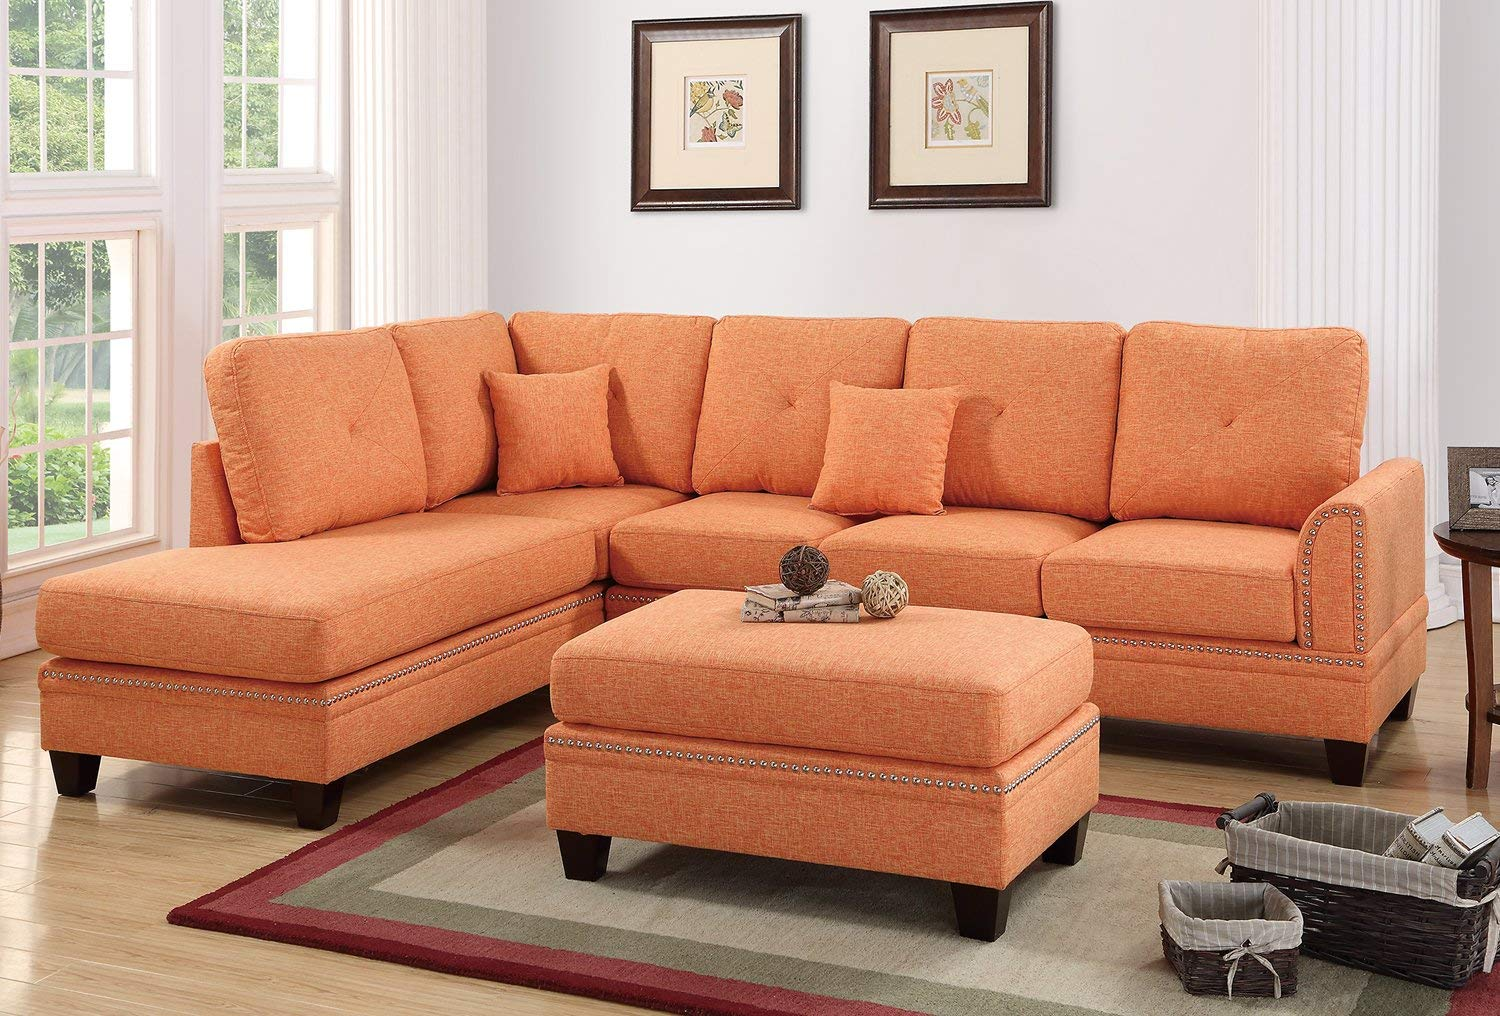 Citrus 2PC Sectional Sofa With Nail Head Trim Accents